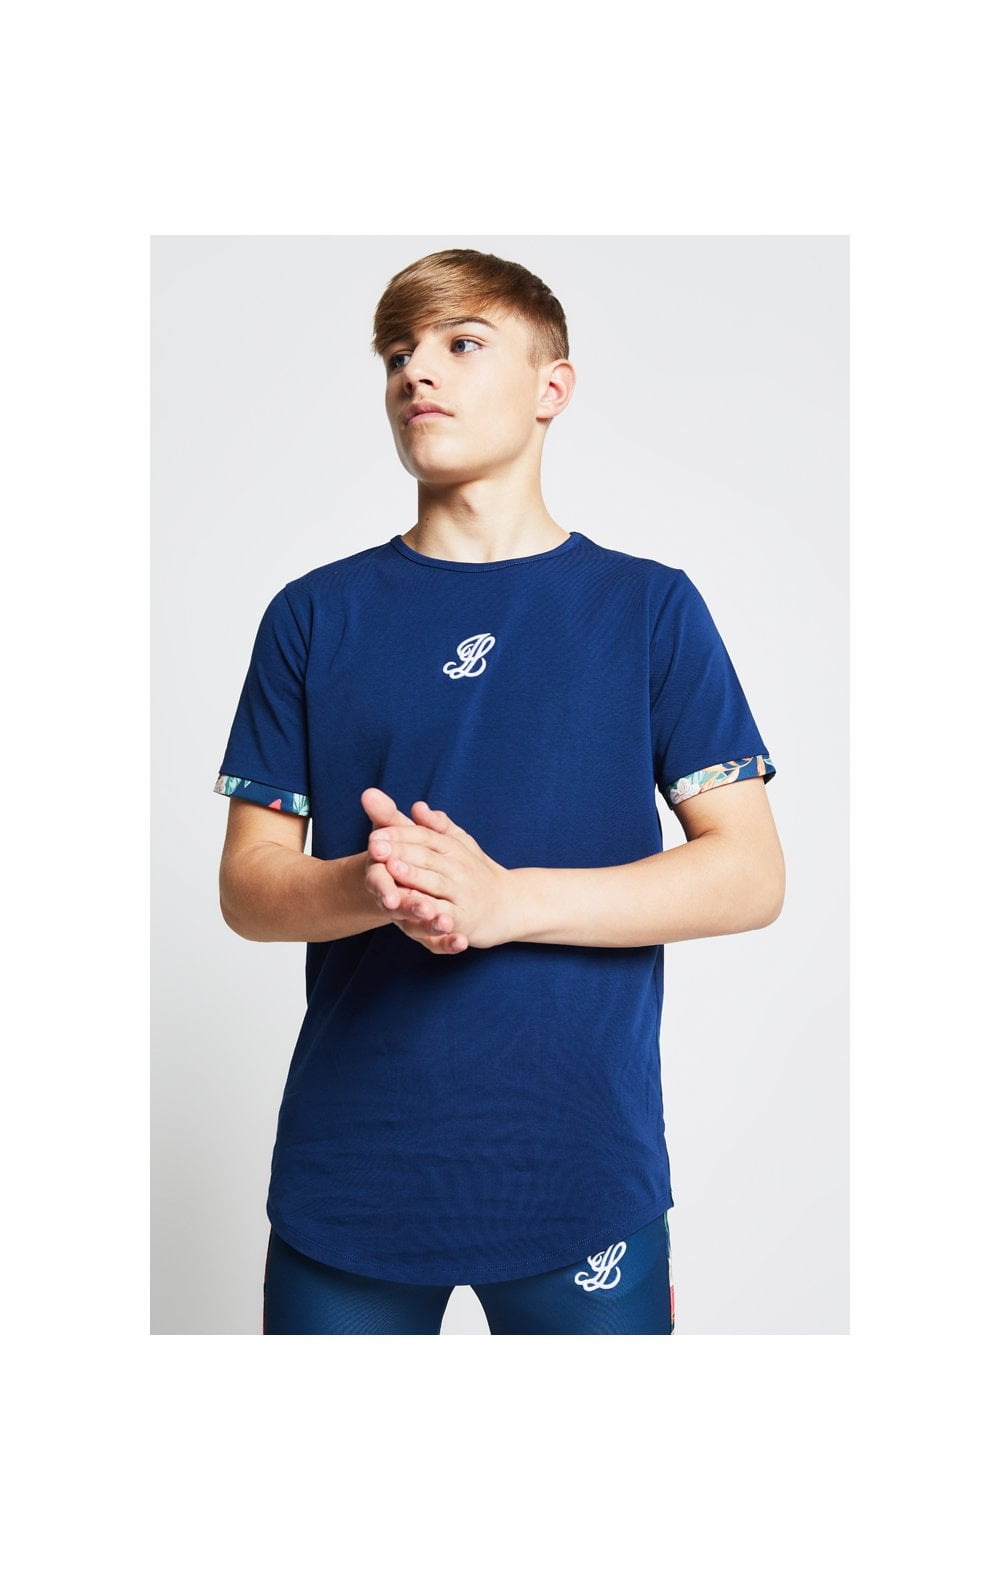 Illusive London Contrast Cuff Tee – Teal & Tropical Leaf